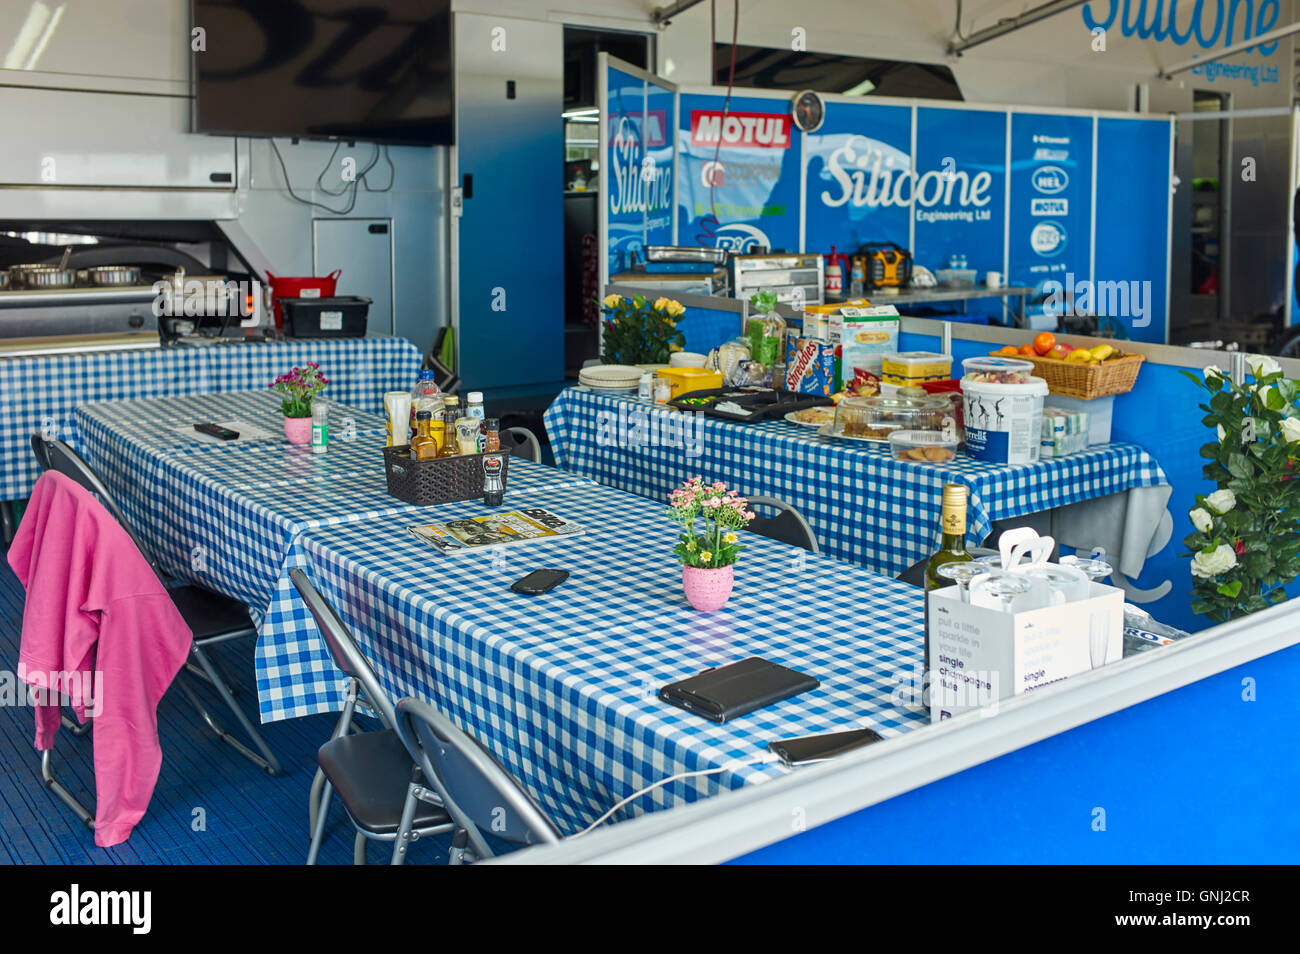 Silicone Engineering race team eating area at the Festival of Motorcycling, Isle of Man 2016 - Stock Image